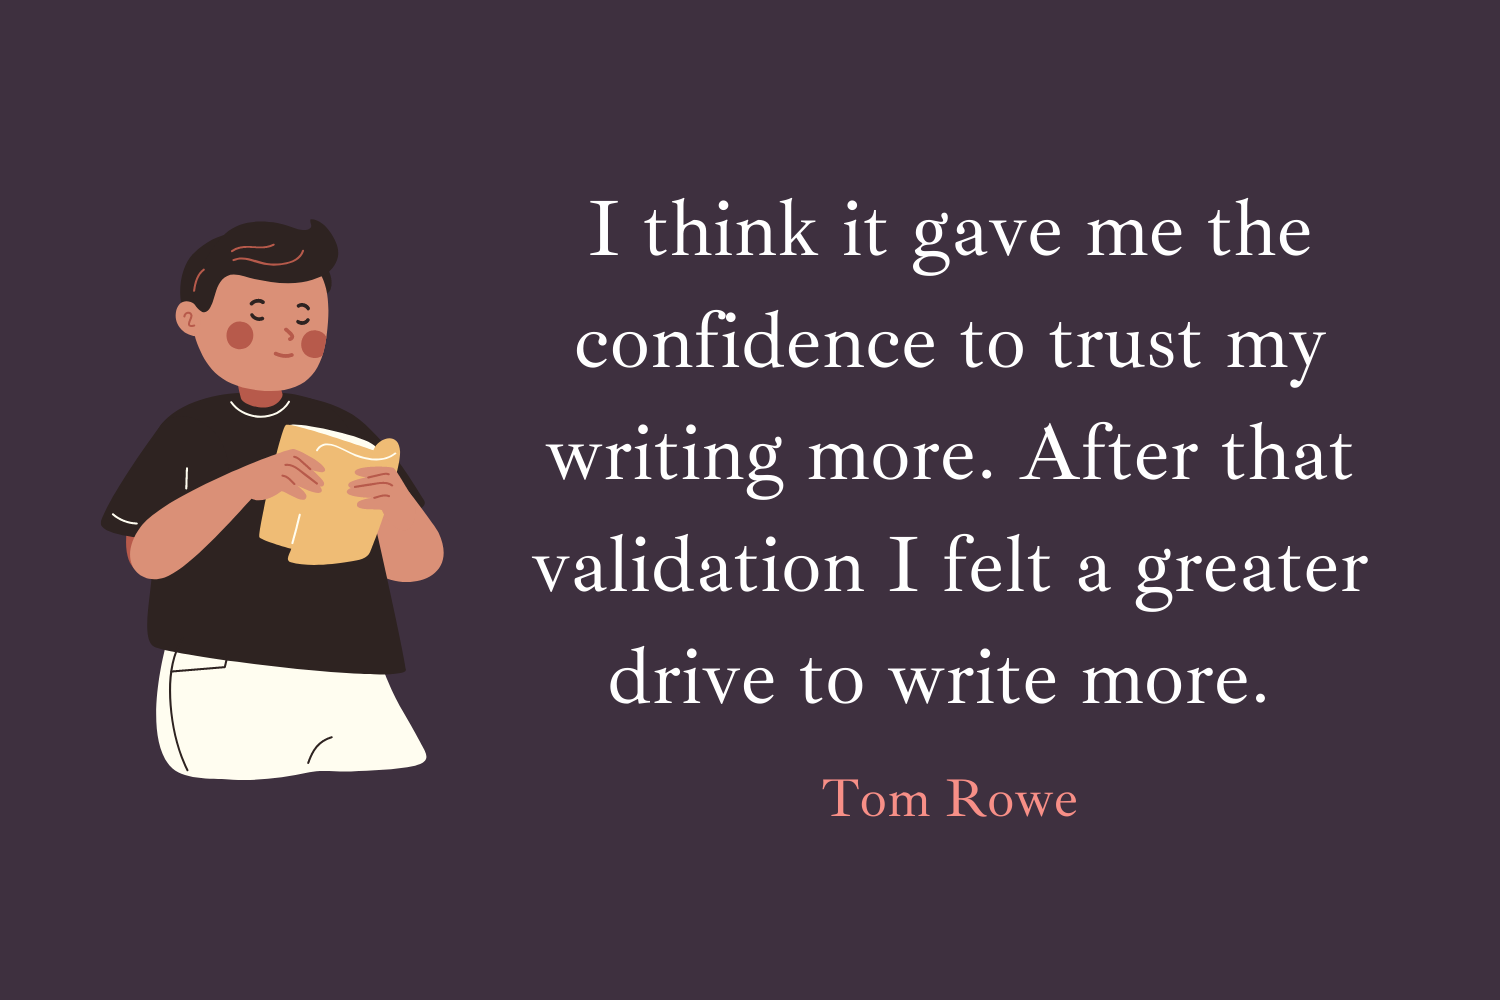 I think it gave me the confidence to trust my writing more. After that validation I felt a greater drive to write more. It made me feel like there was power and potential in my voice, which helped me be bolder and push myself further. (Tom Rowe)